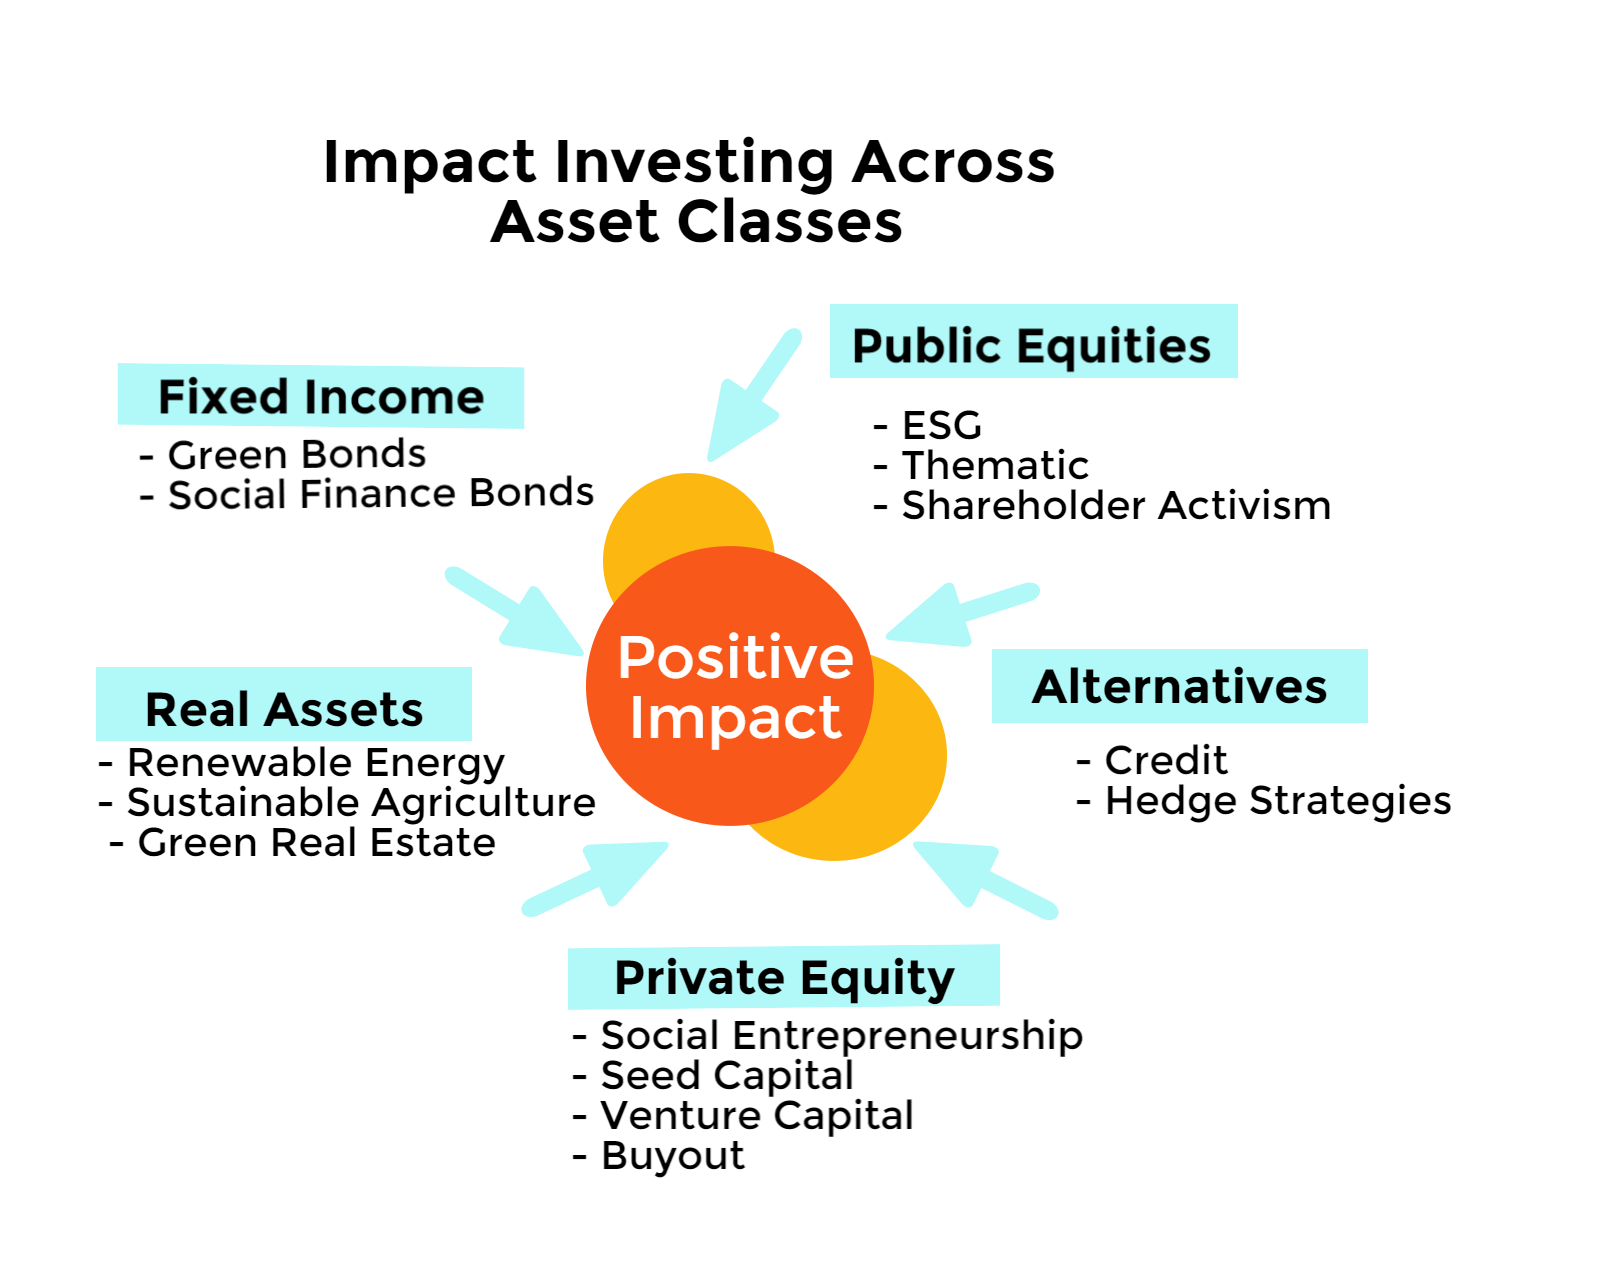 Impact investing and assets forex 64 bit